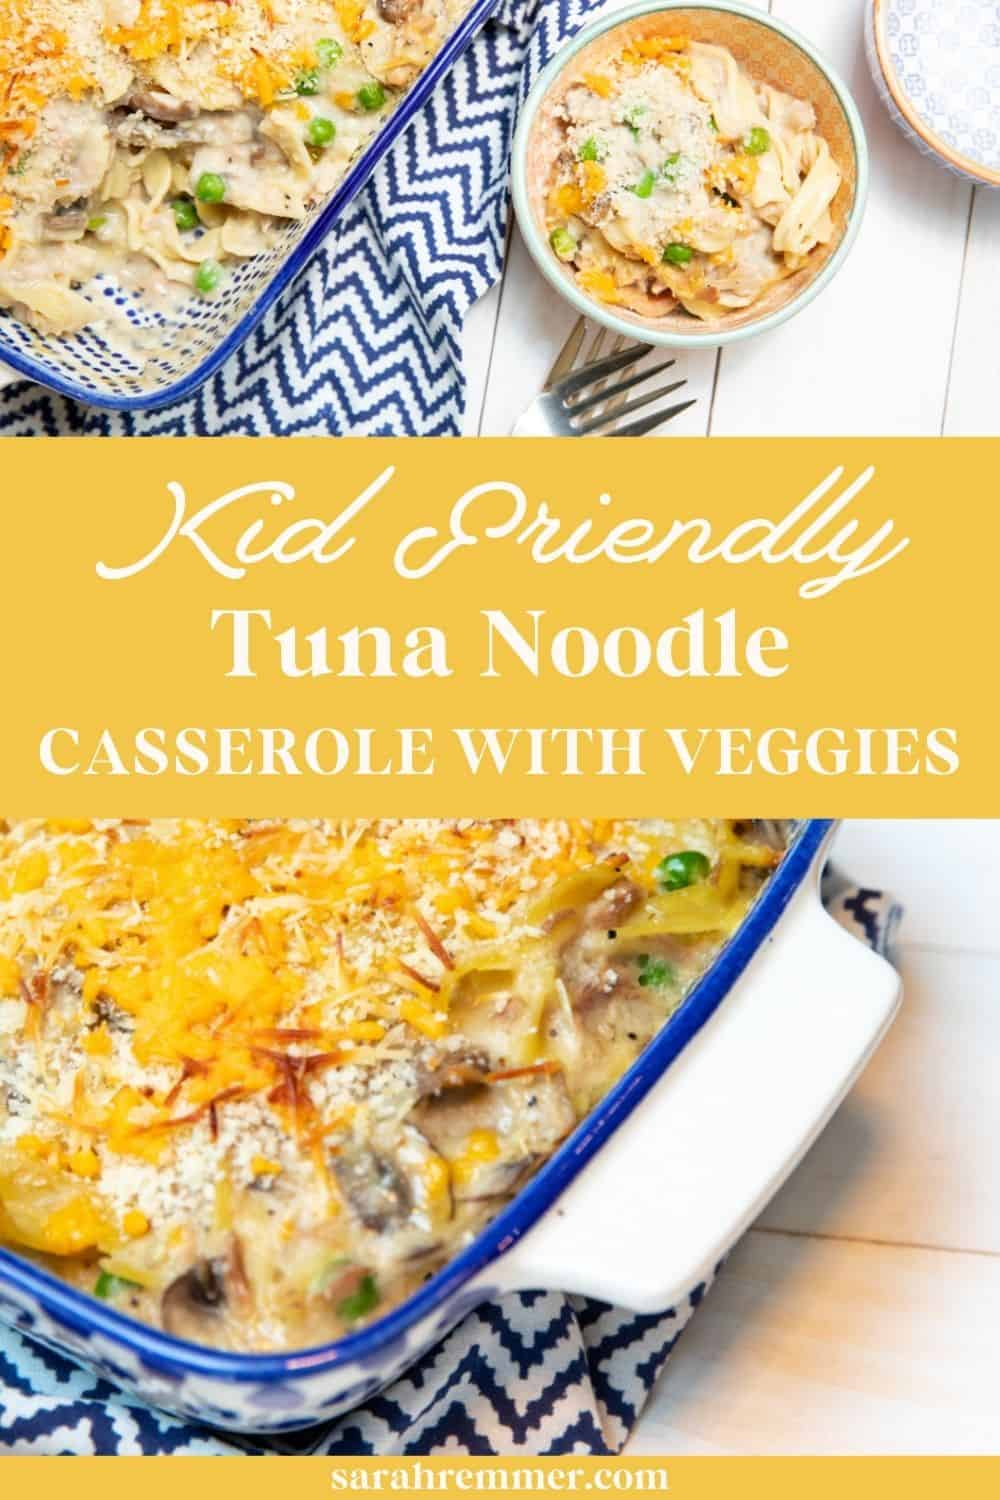 This delicious homemade tuna noodle casserole will quickly become a weeknight favourite.